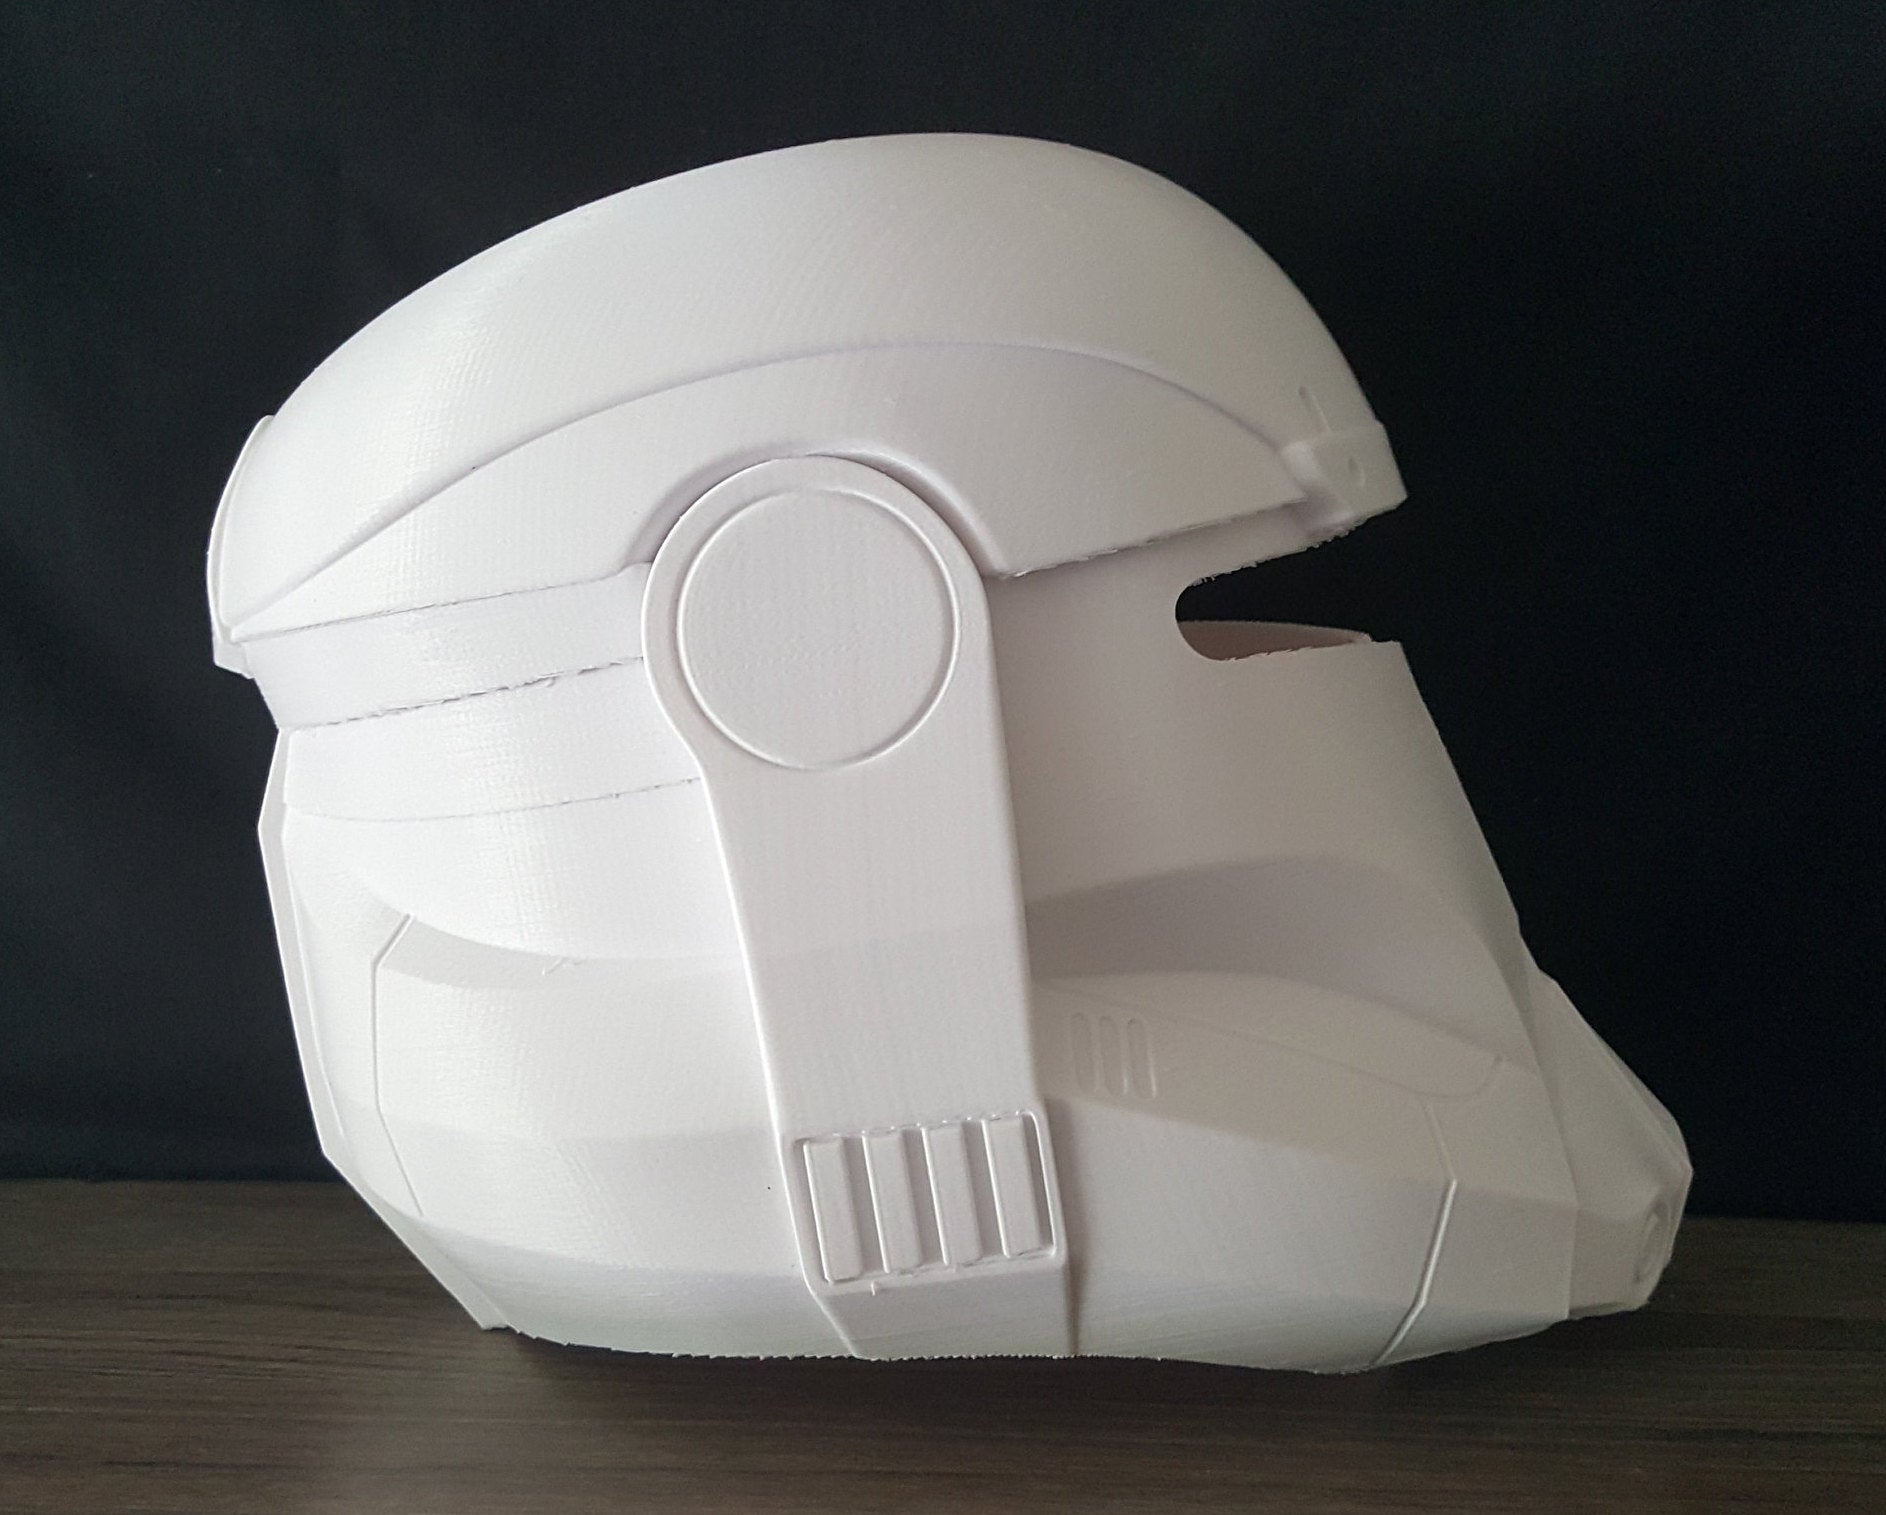 Republic Commando Clone Trooper Helmet - DIY - The Galactic Armory